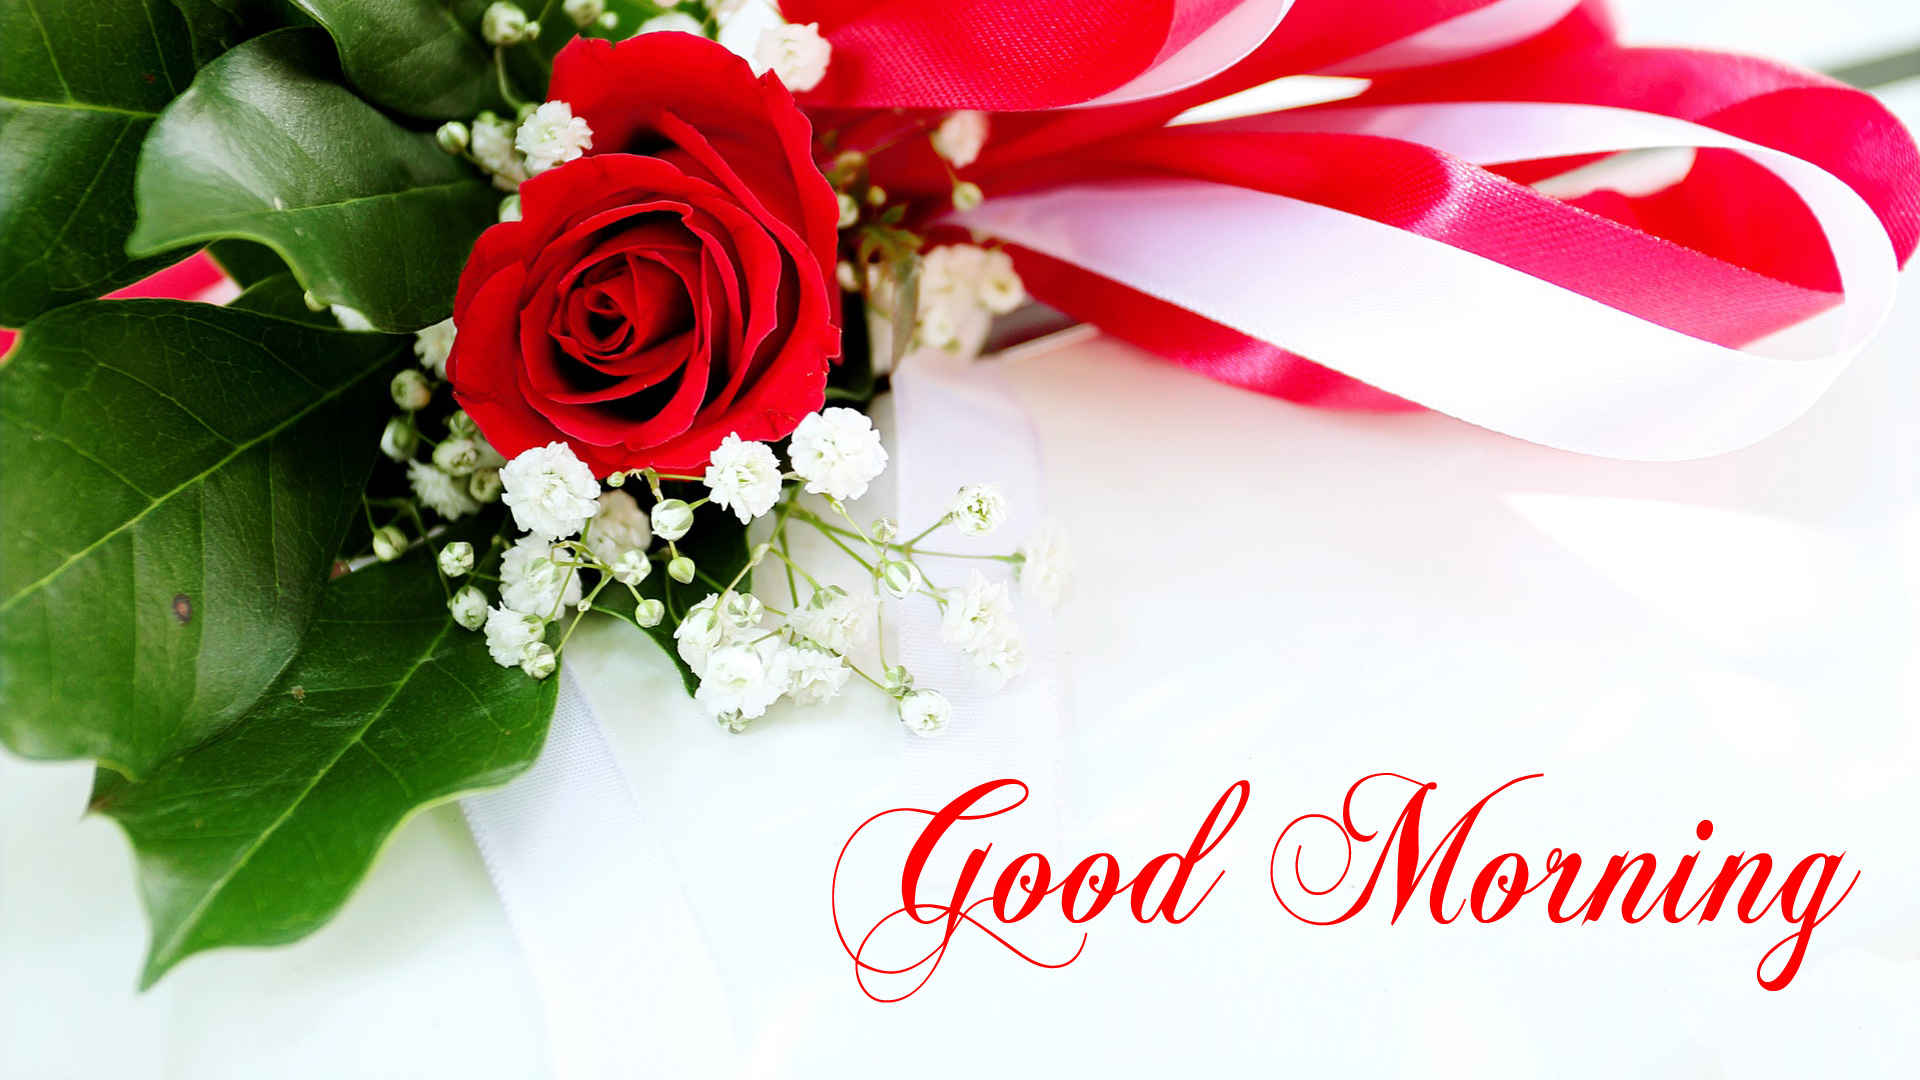 Good Morning Red Rose HD Images